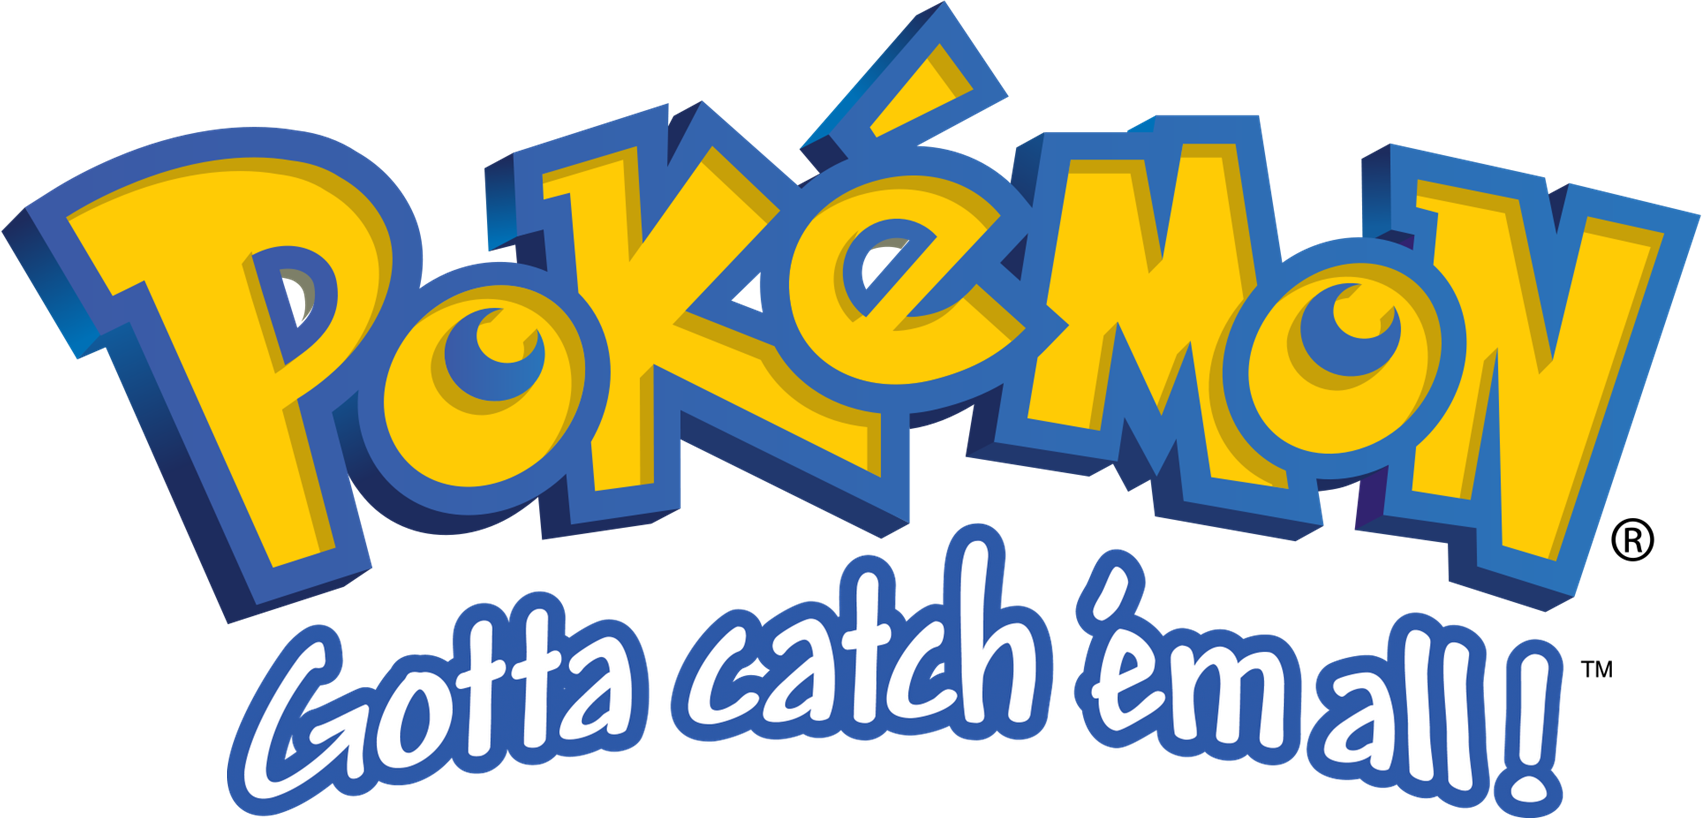 By the way to catch them all you re going to need your parents to 21c7d50935